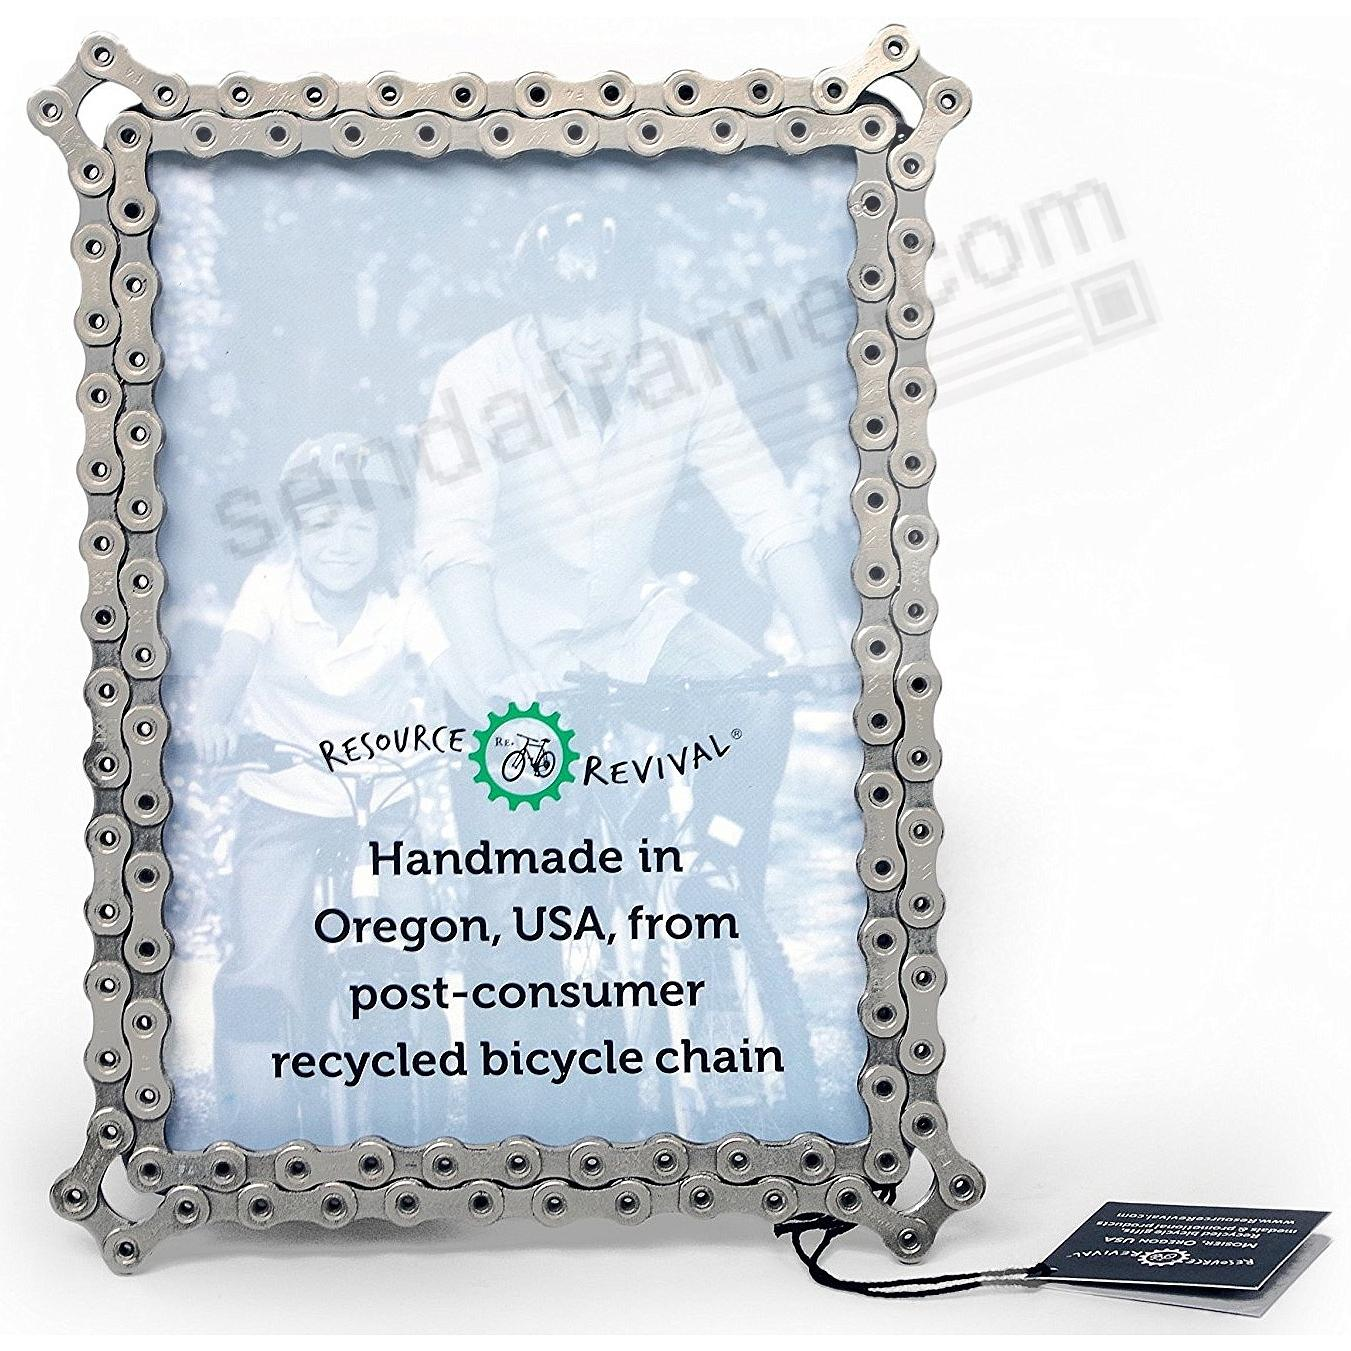 Recycled Bike Chain 4x6 frame by Resource Revival®